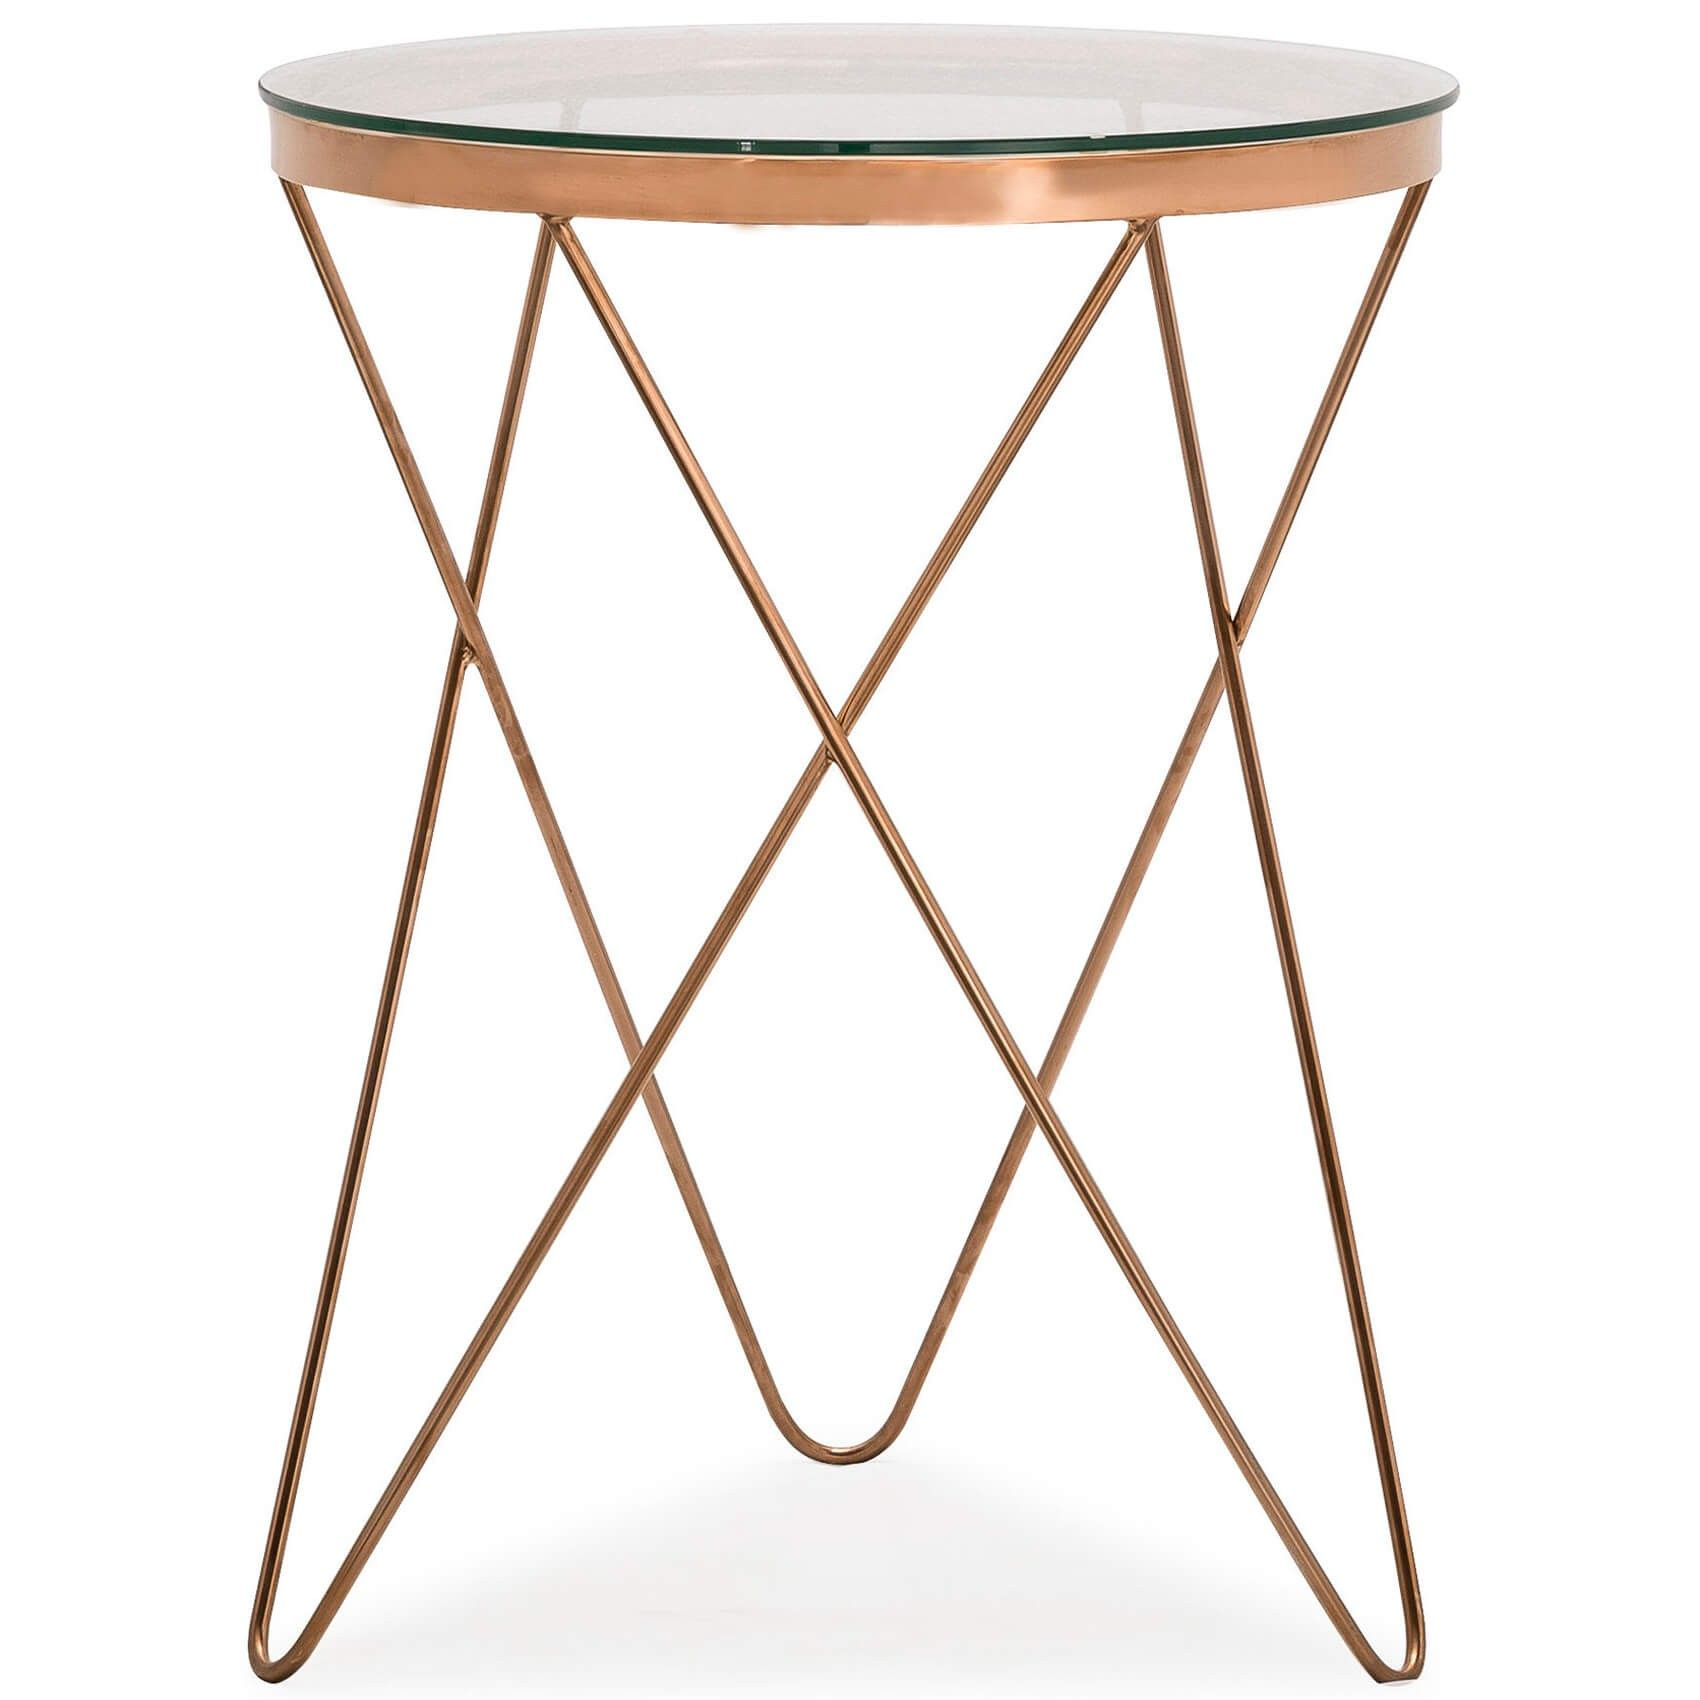 marquee table sarah evan furniture and rose gold accent end tables lamps mirror top side teal wall decoration items pool ikea pedestal short narrow chinese jar slide bolt latch